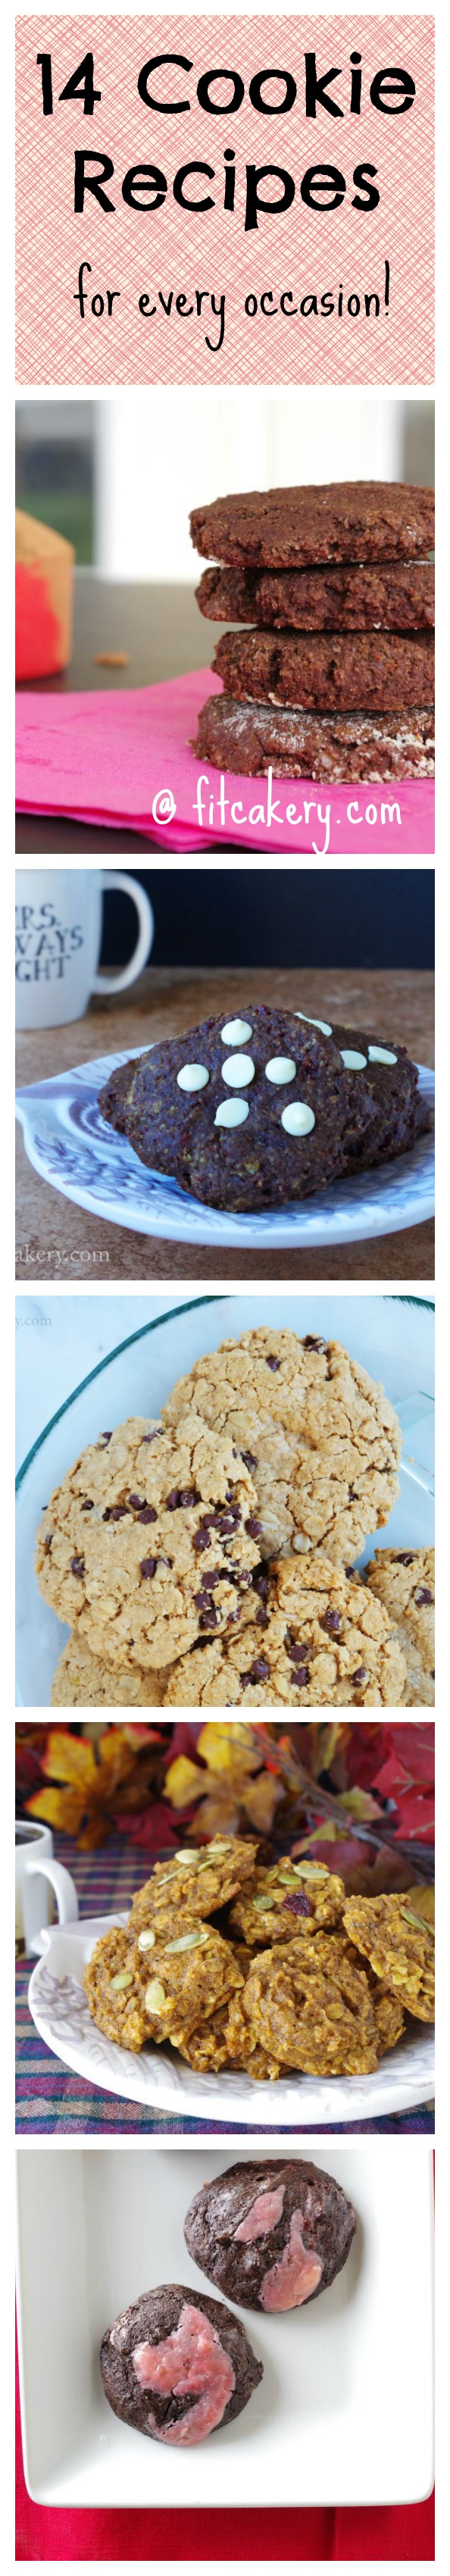 The Best Healthy Cookie Recipes from FitCakery.com! Pin to Save!